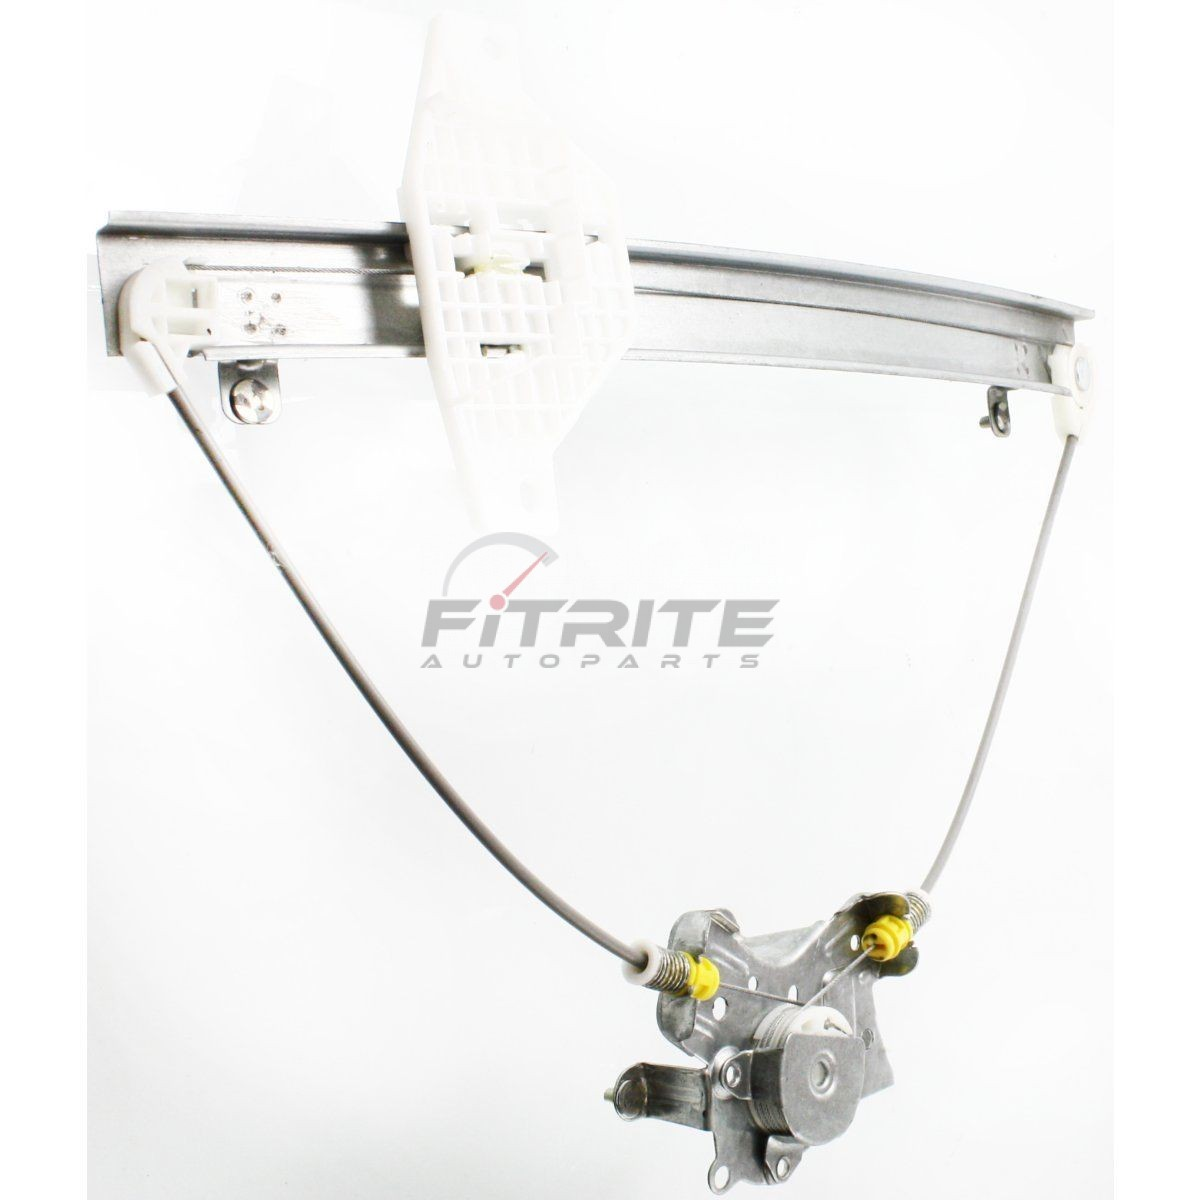 NEW FRONT RIGHT POWER WINDOW REGULATOR FOR 1999-2005